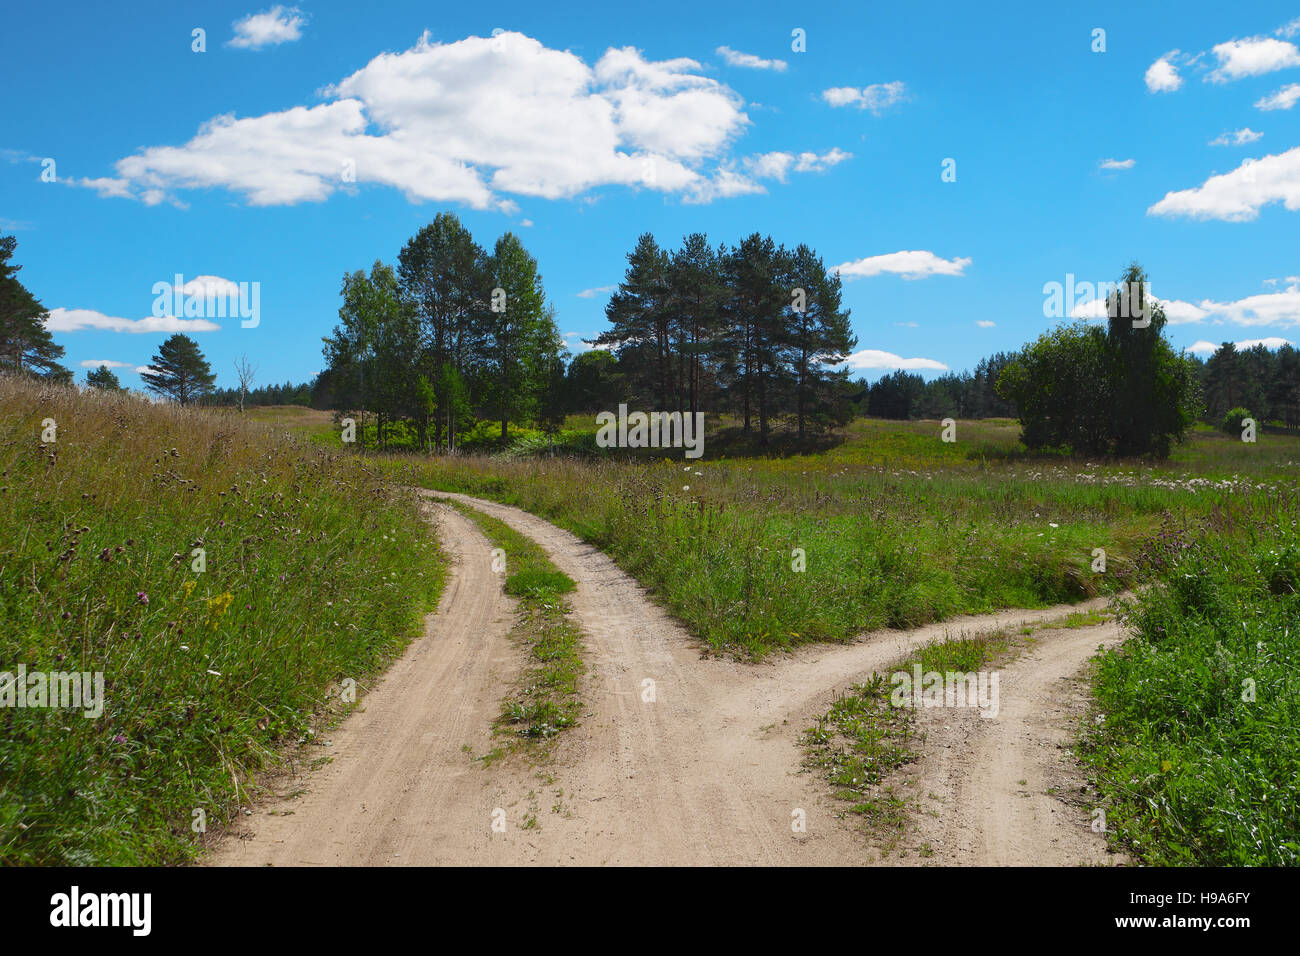 Rural scenic landscape with crossroad on hill in forest. Two different directions. Concept of choose the correct - Stock Image